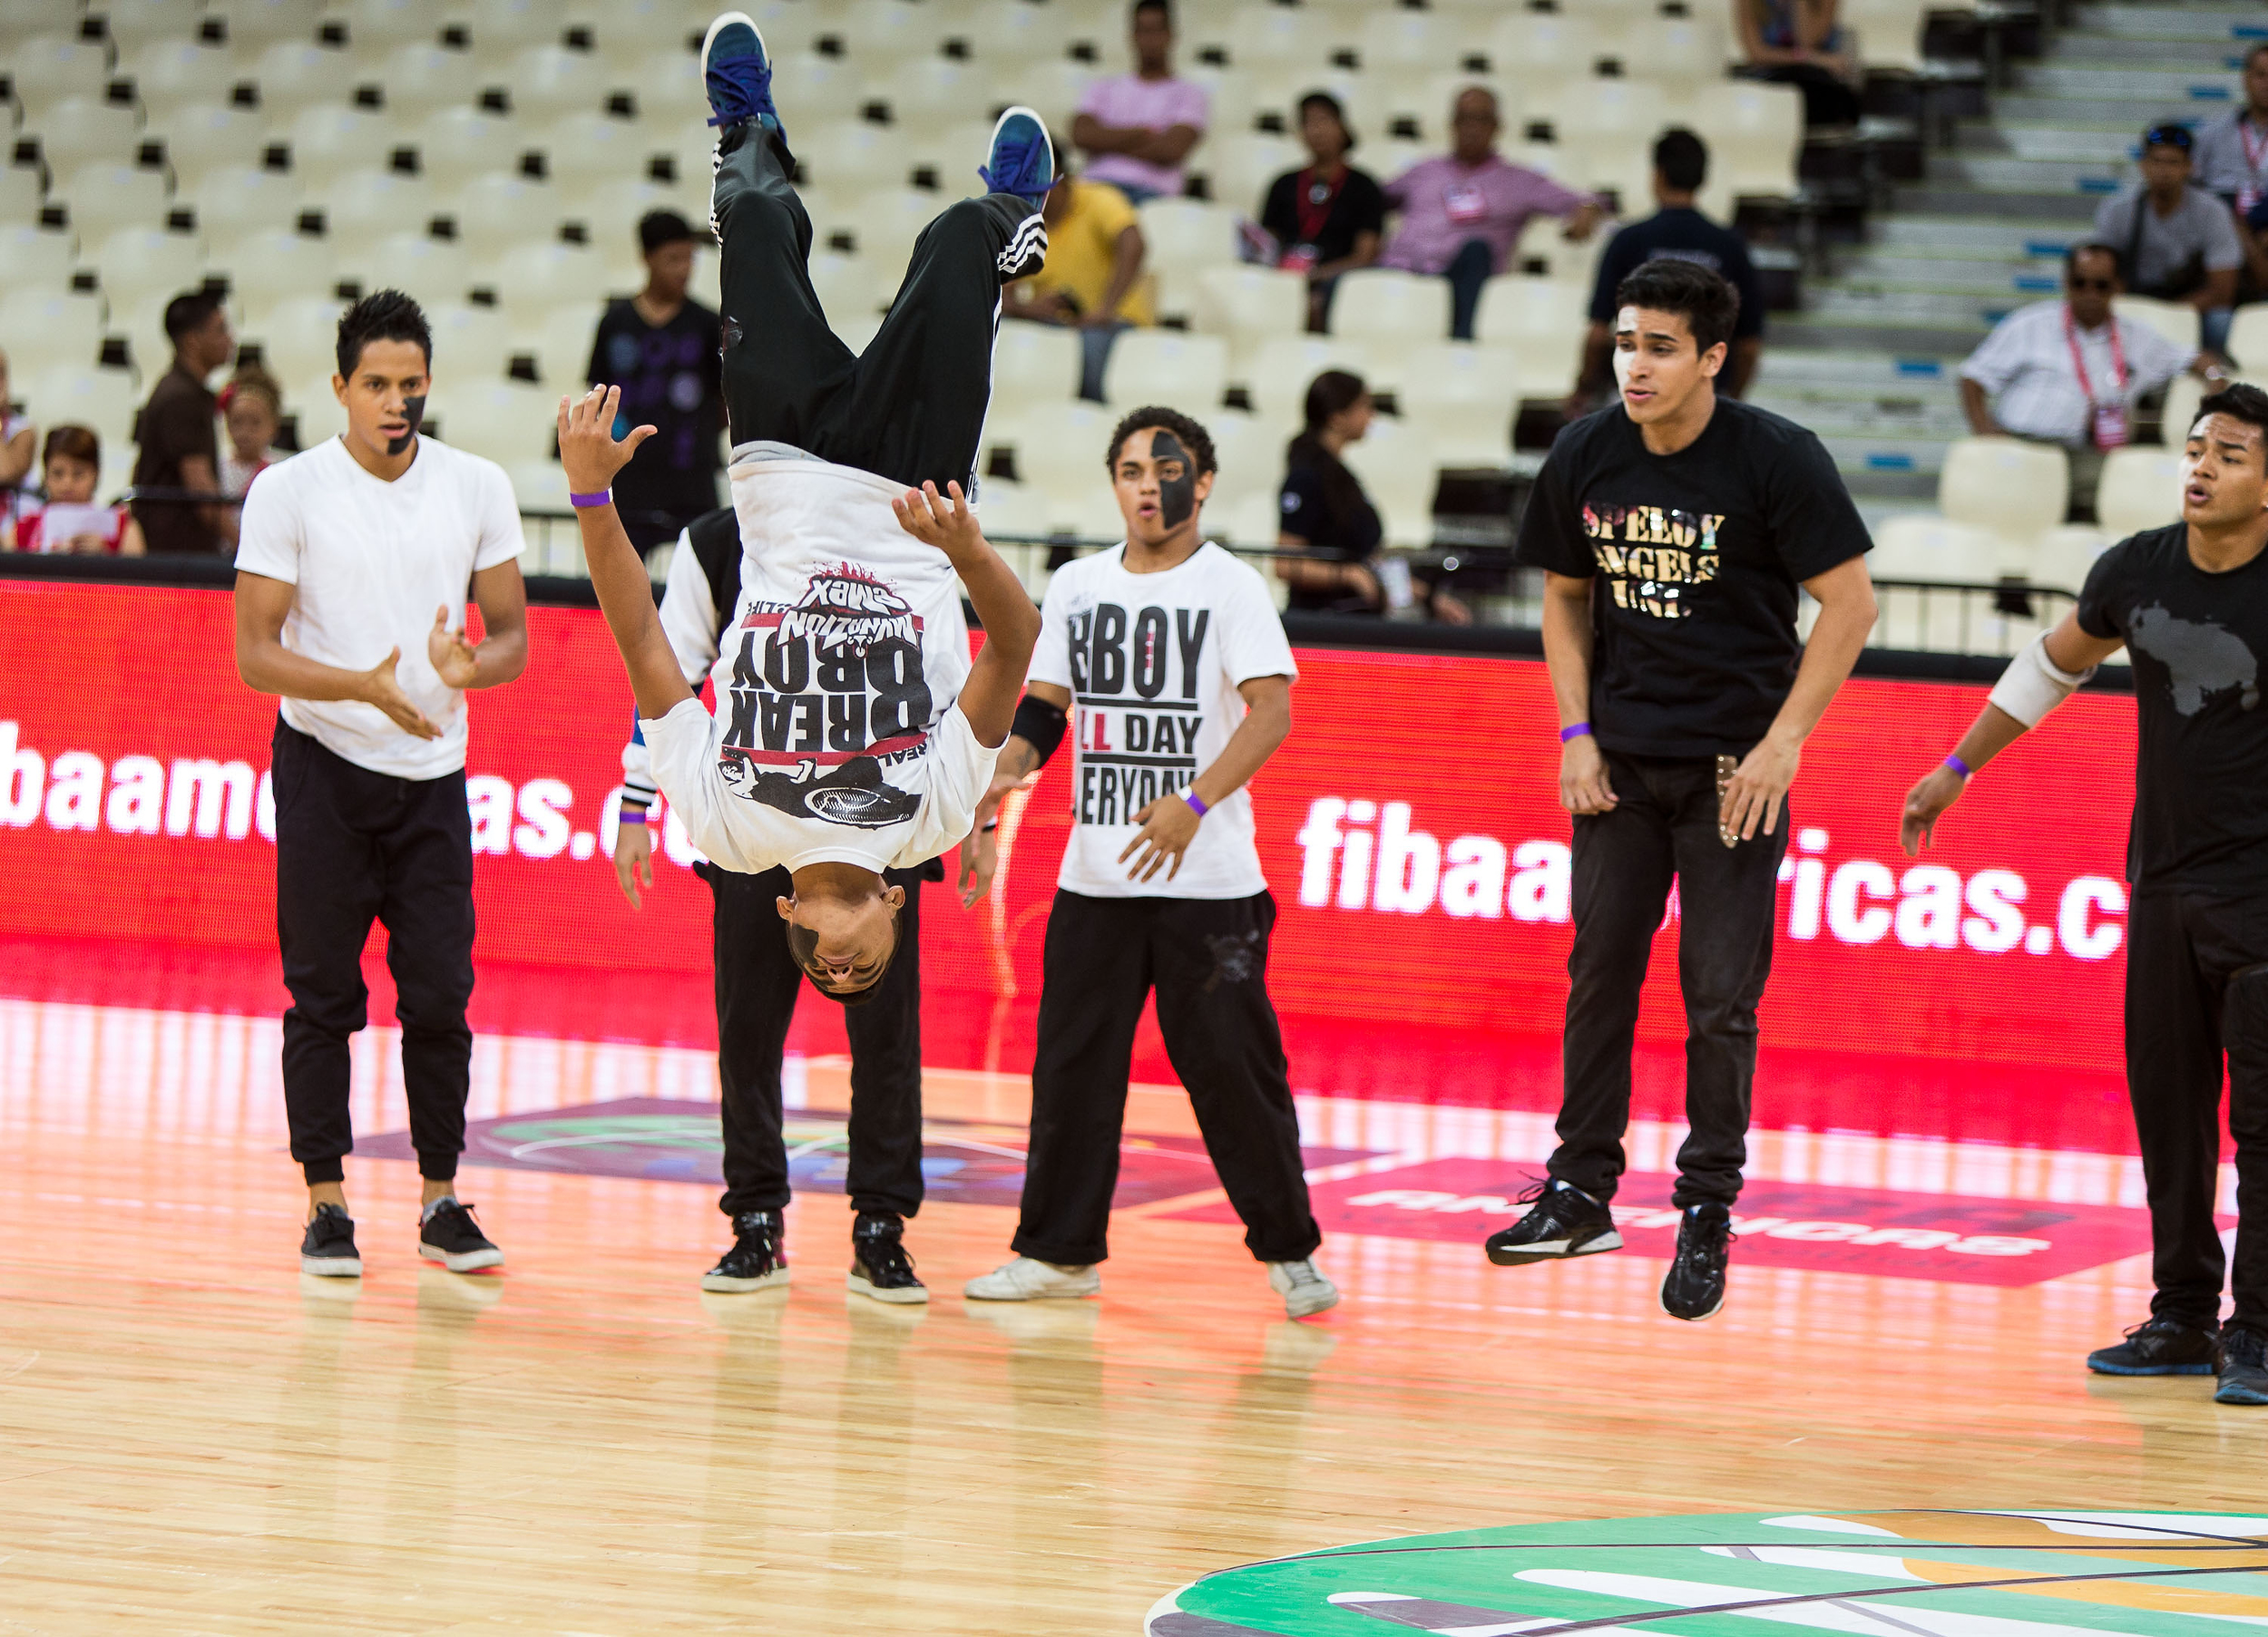 The halftime entertainment was pretty impressive. Here, breakdancers go airborne with some slick moves.